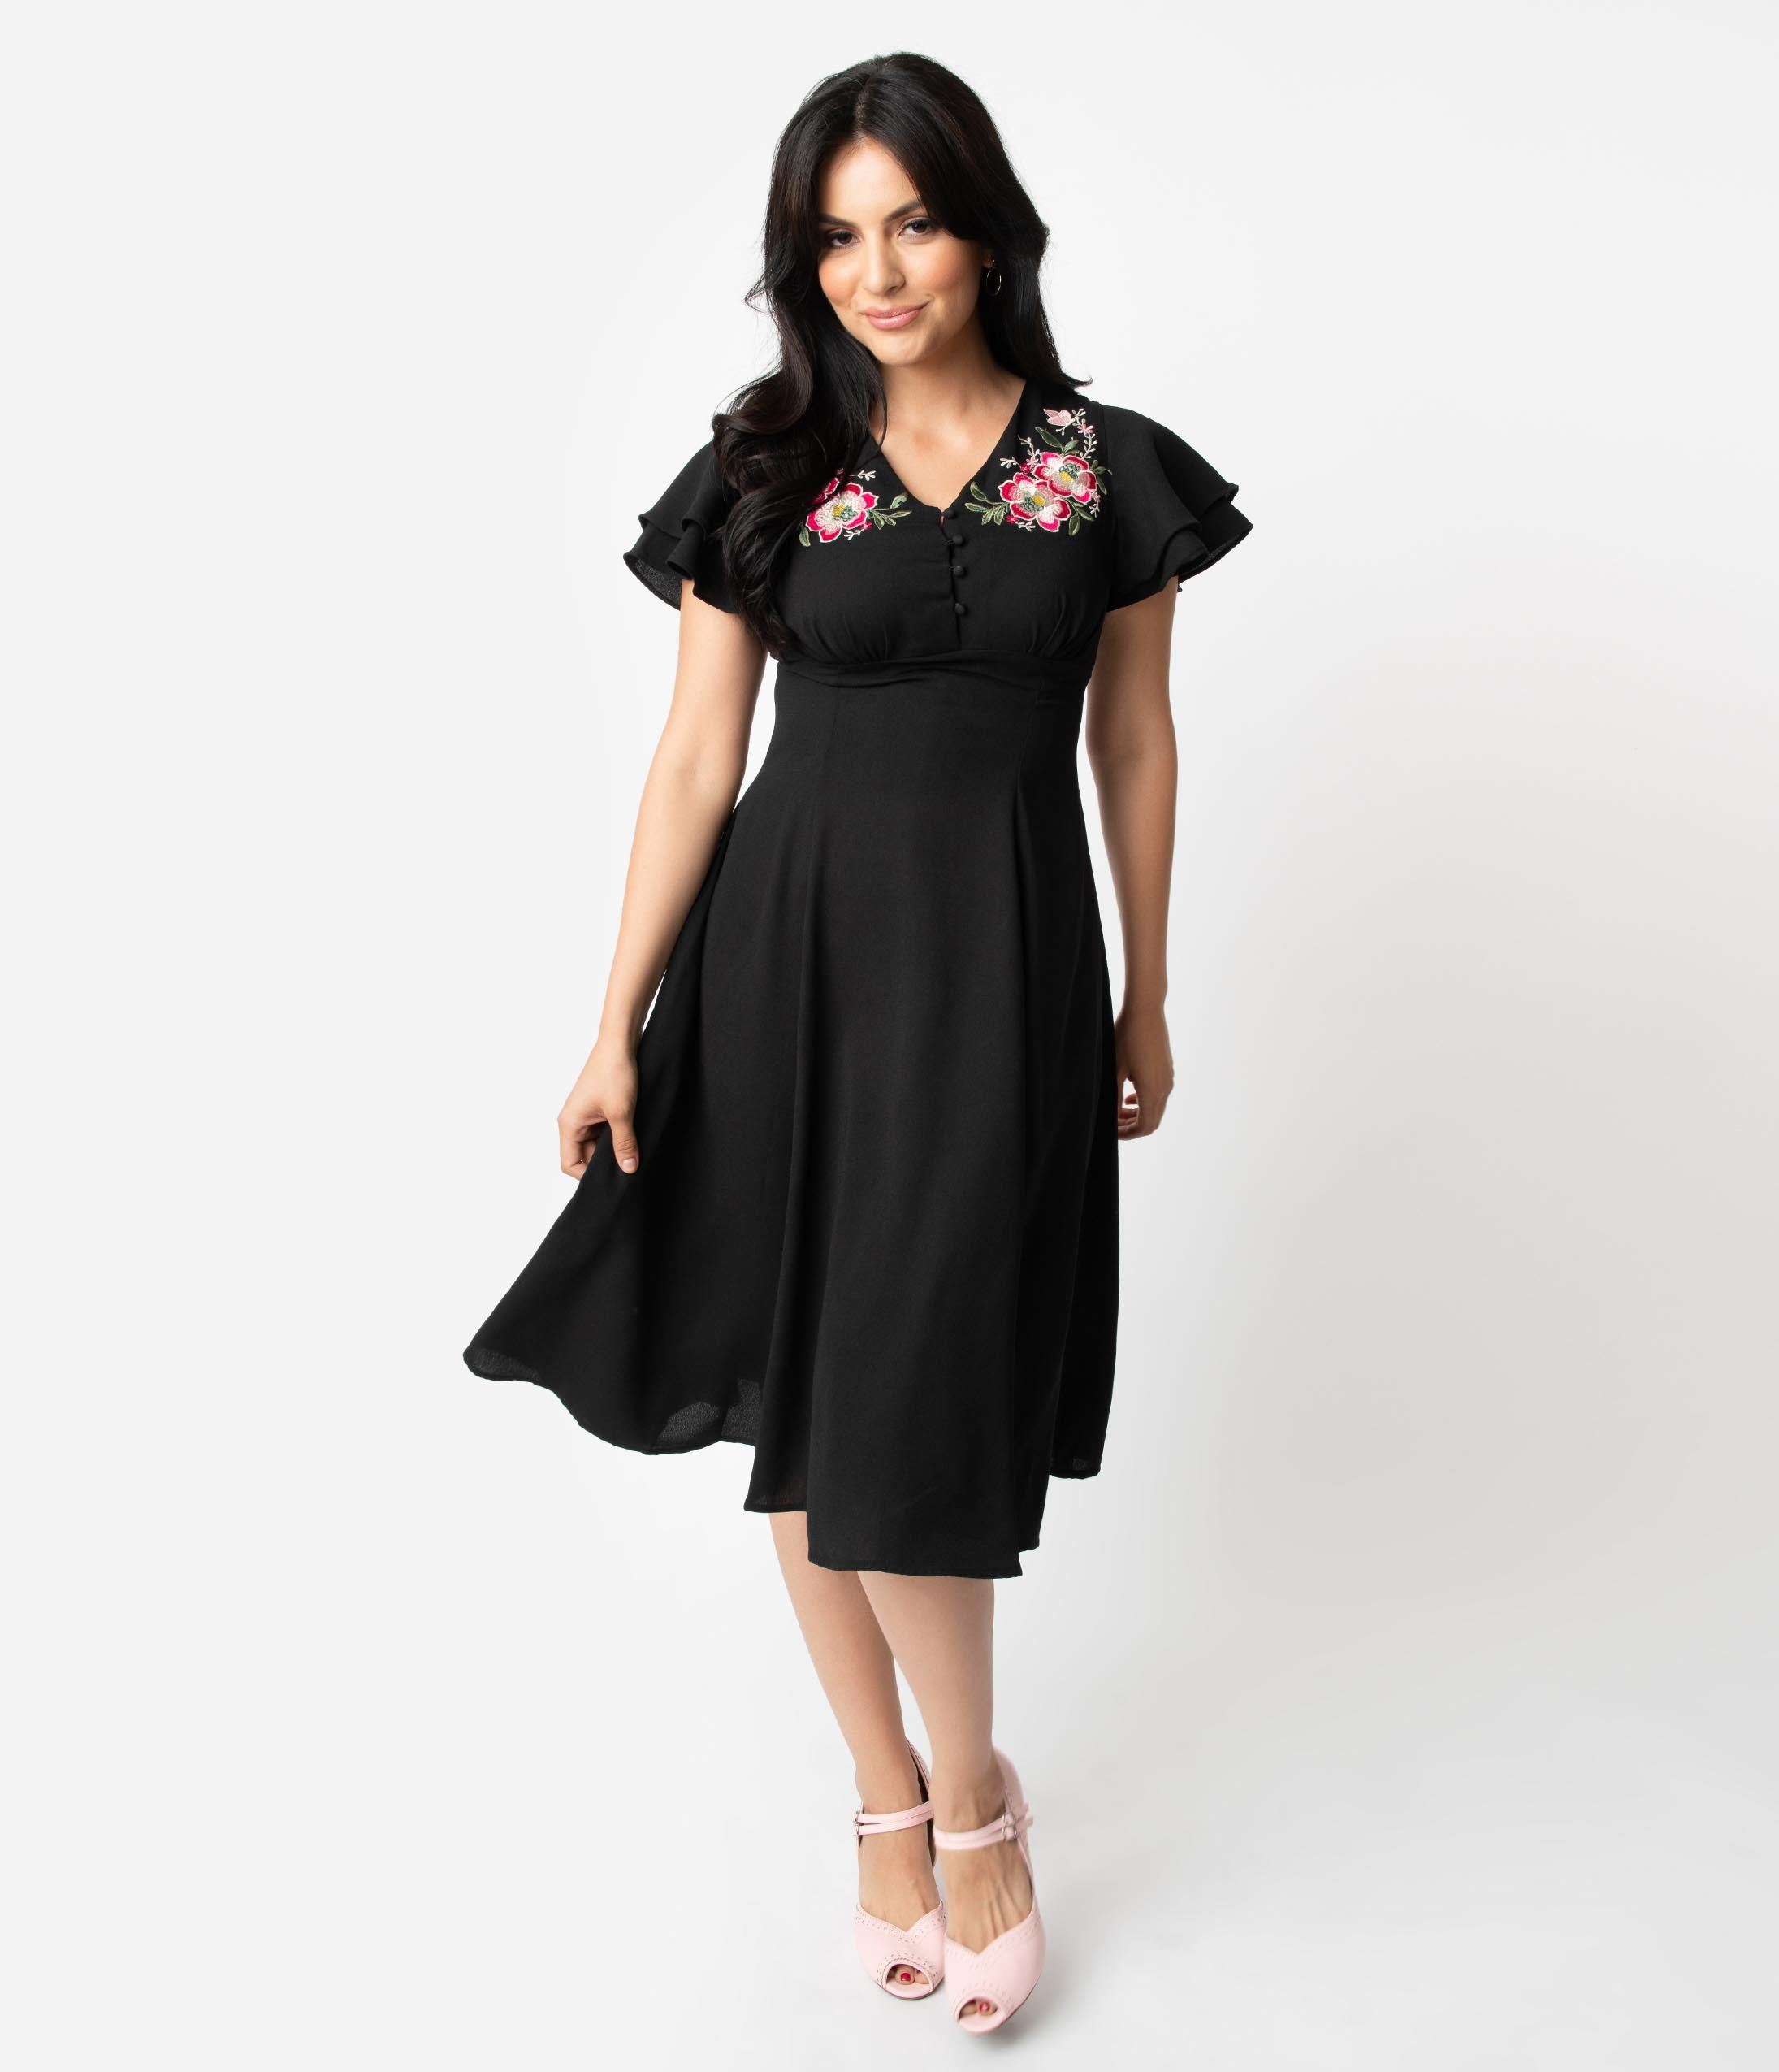 1940s Clothing 1940S Style Black  Pink Floral Embroidery Irena Swing Dress $68.00 AT vintagedancer.com